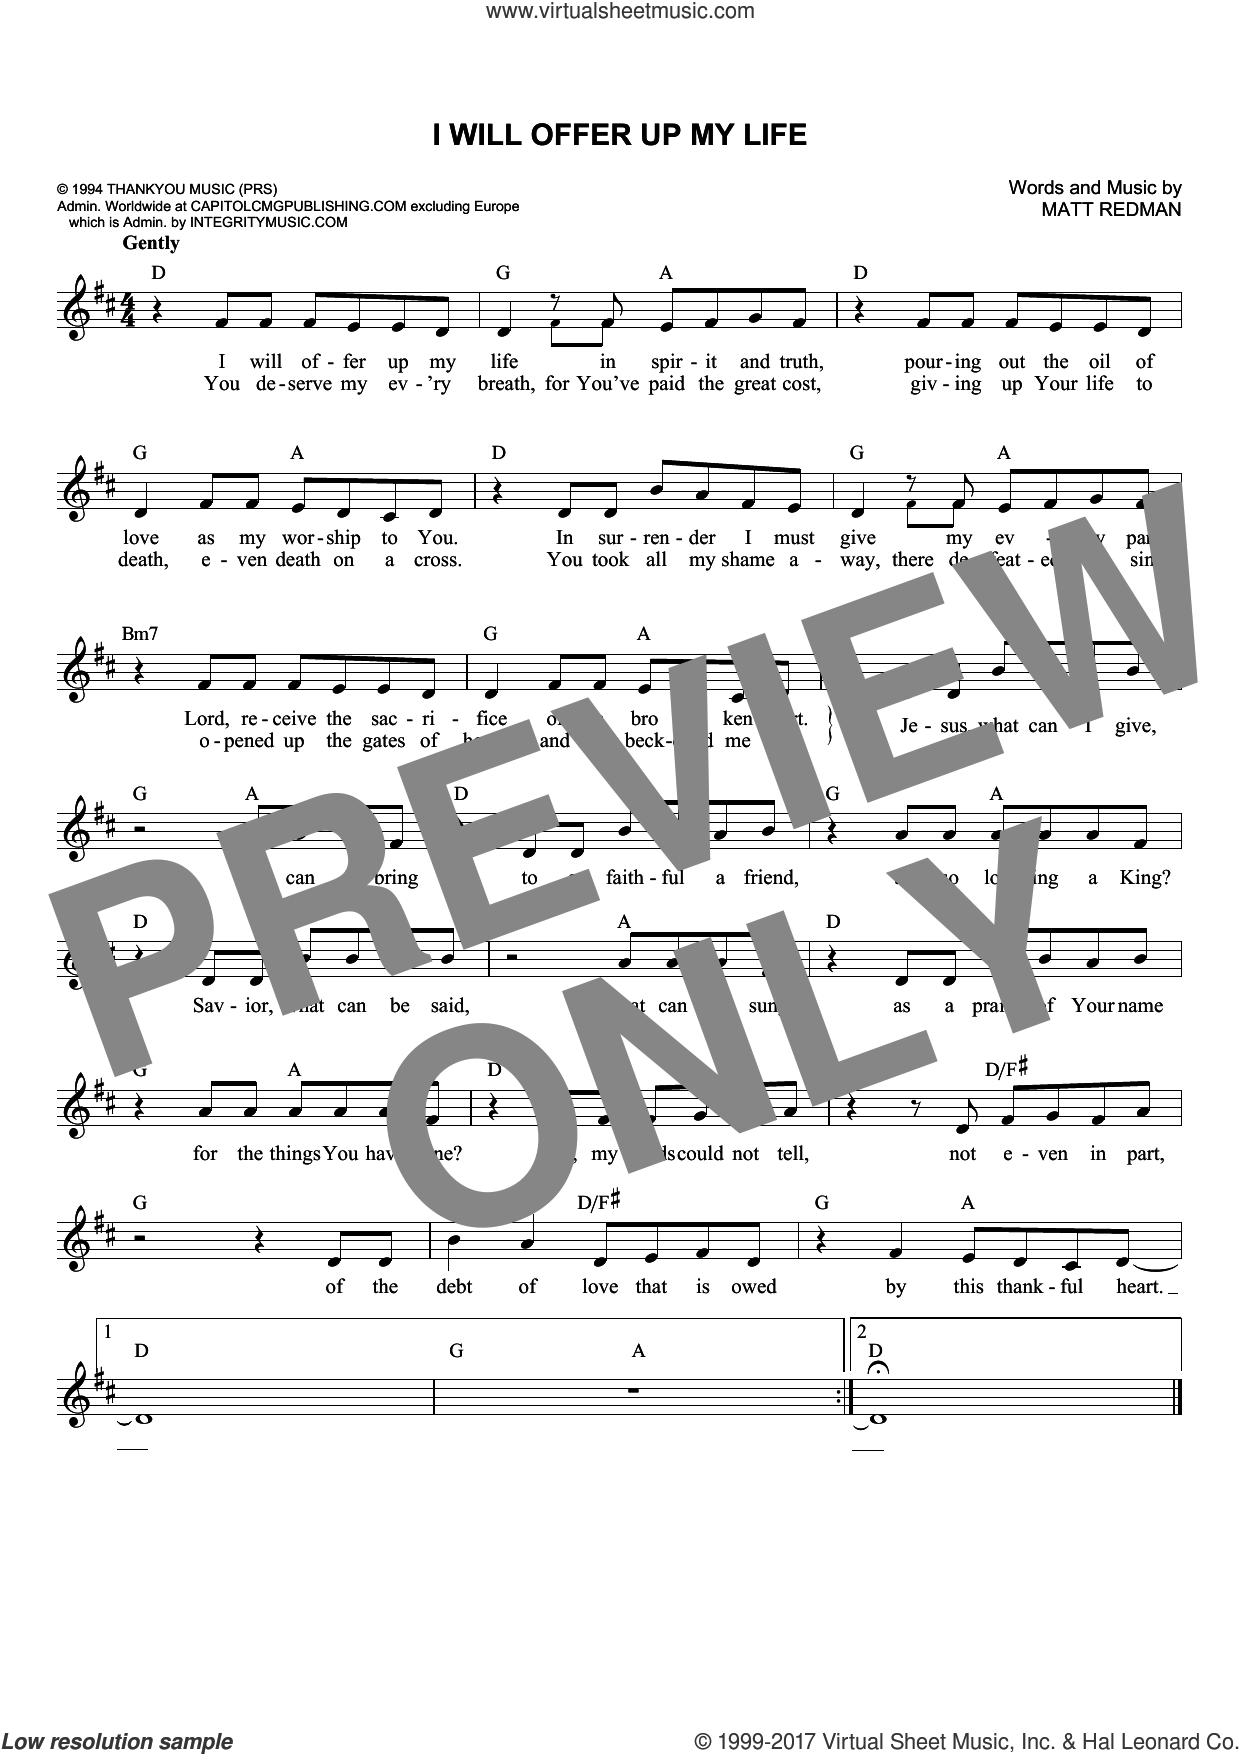 I Will Offer Up My Life sheet music for voice and other instruments (fake book) by Matt Redman, intermediate skill level